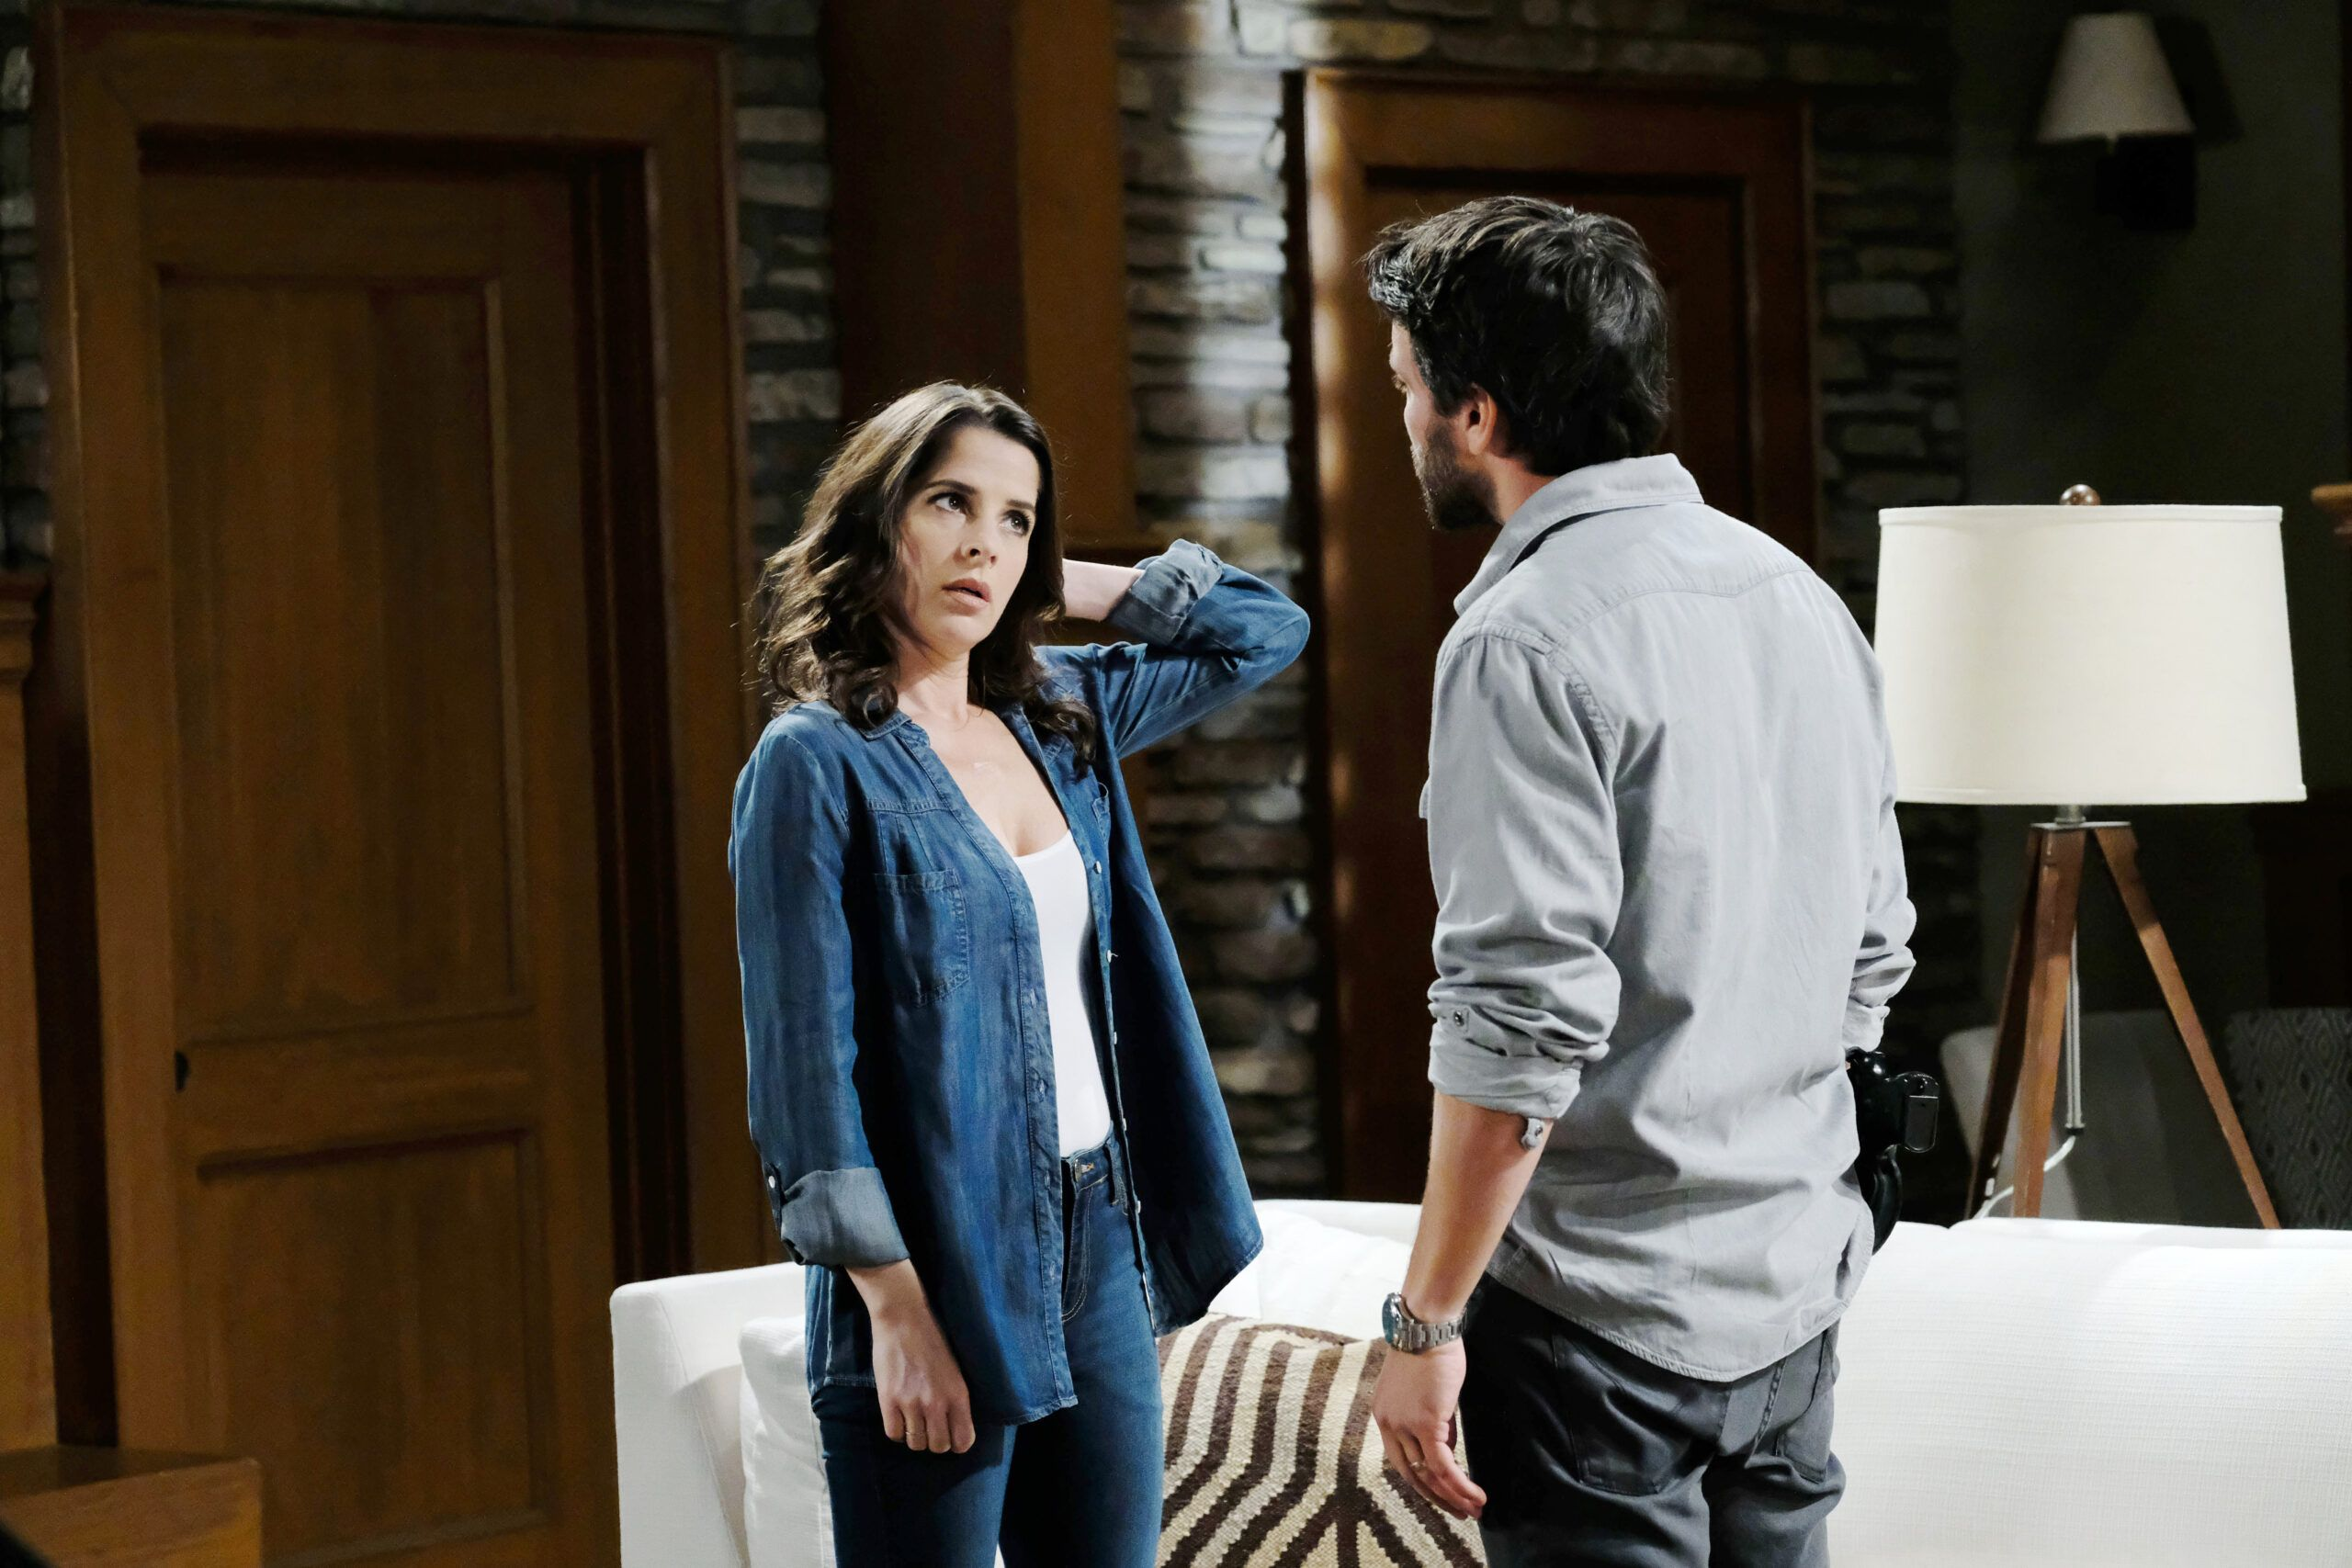 We Weigh In: Could Dante And Sam Become General Hospital's Next Big Super Couple